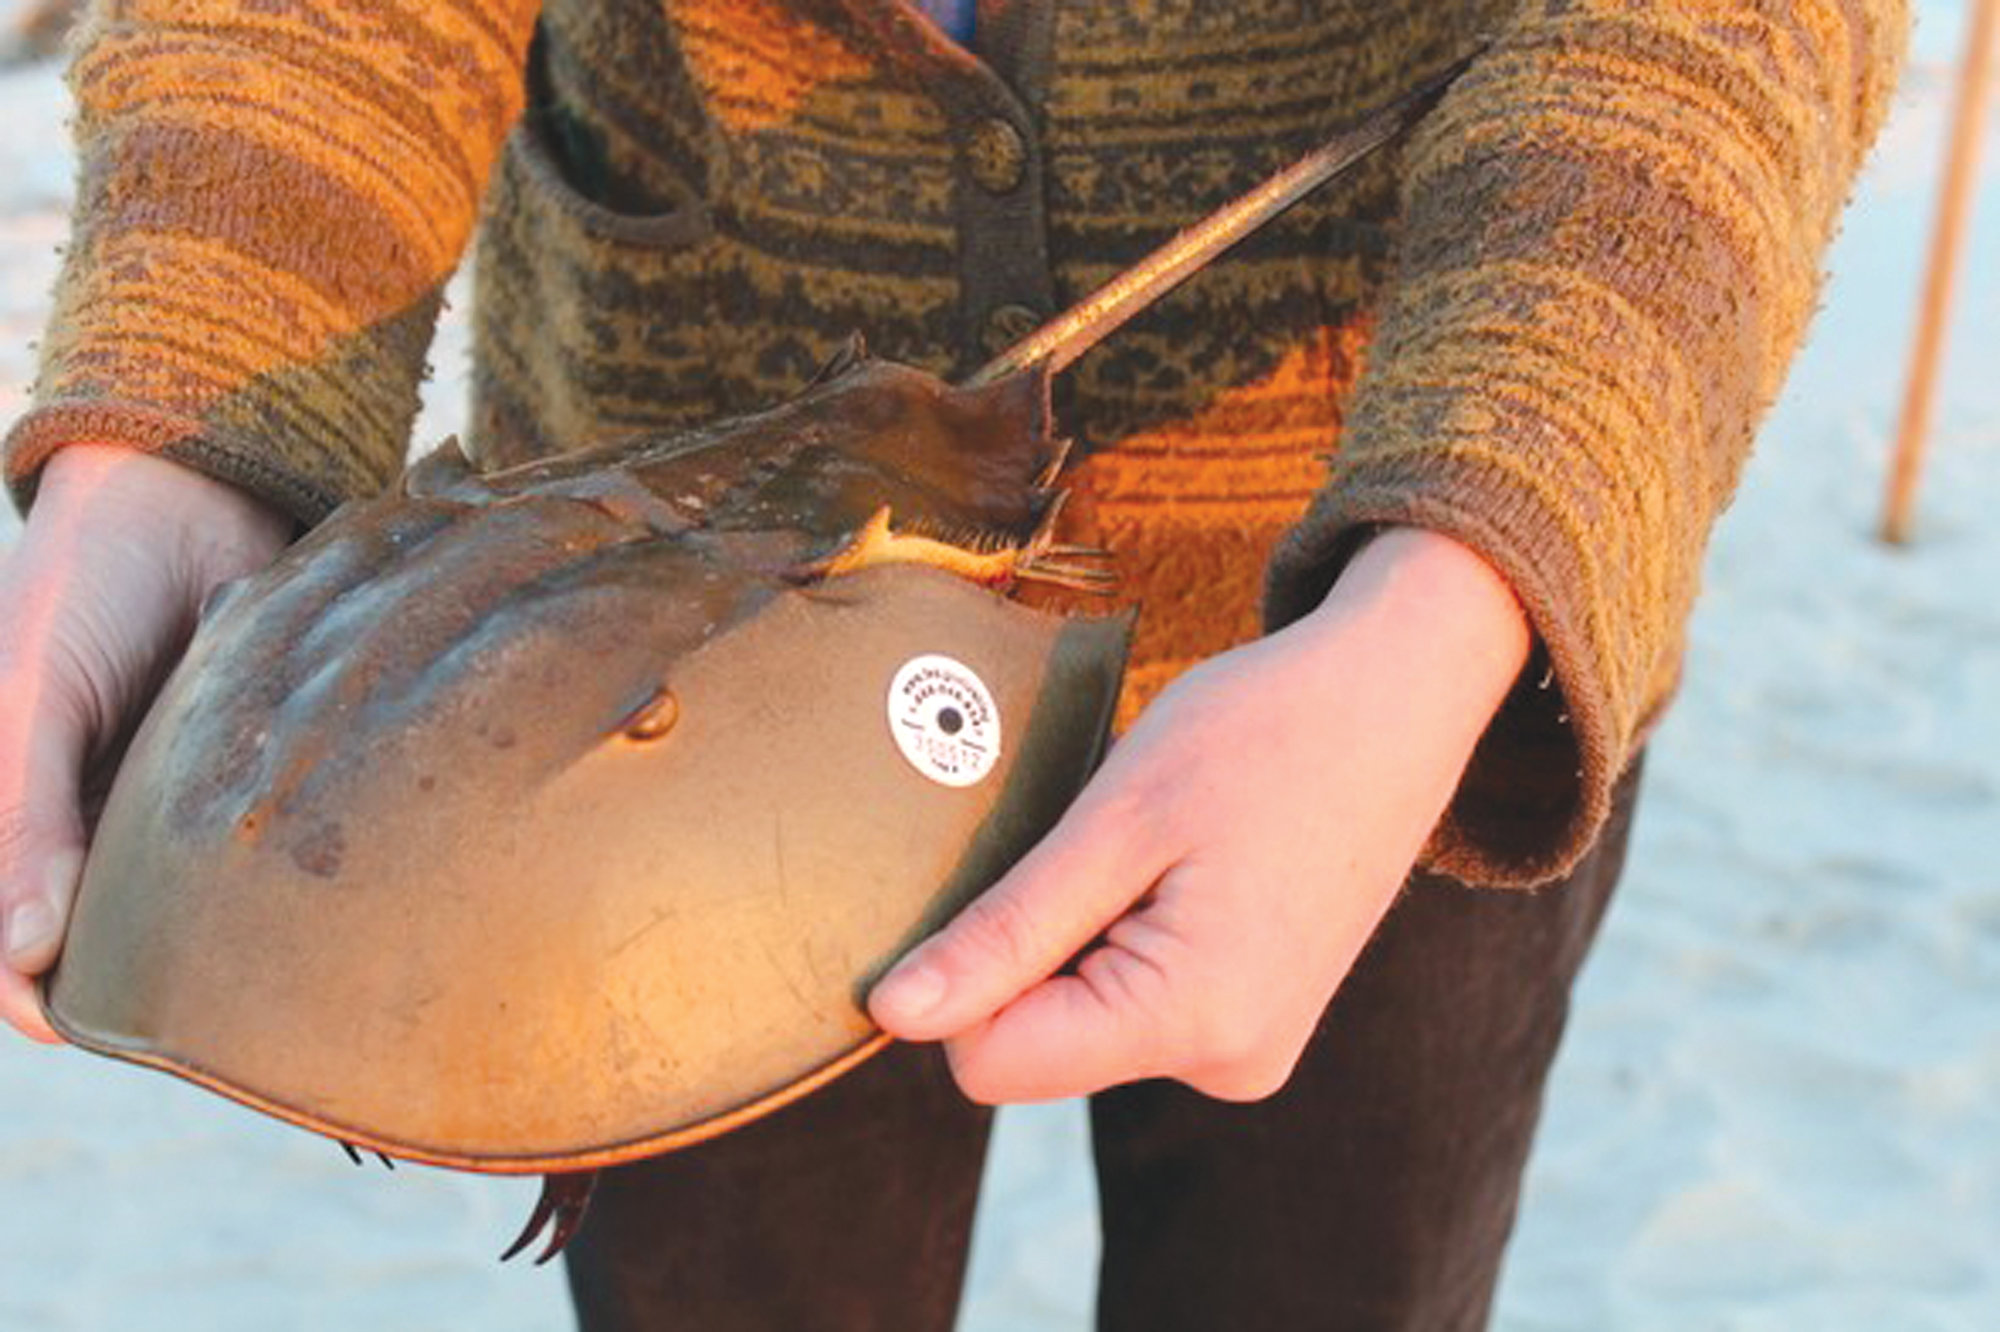 A CES attendee prepares to release a tagged horseshoe crab in 2015.